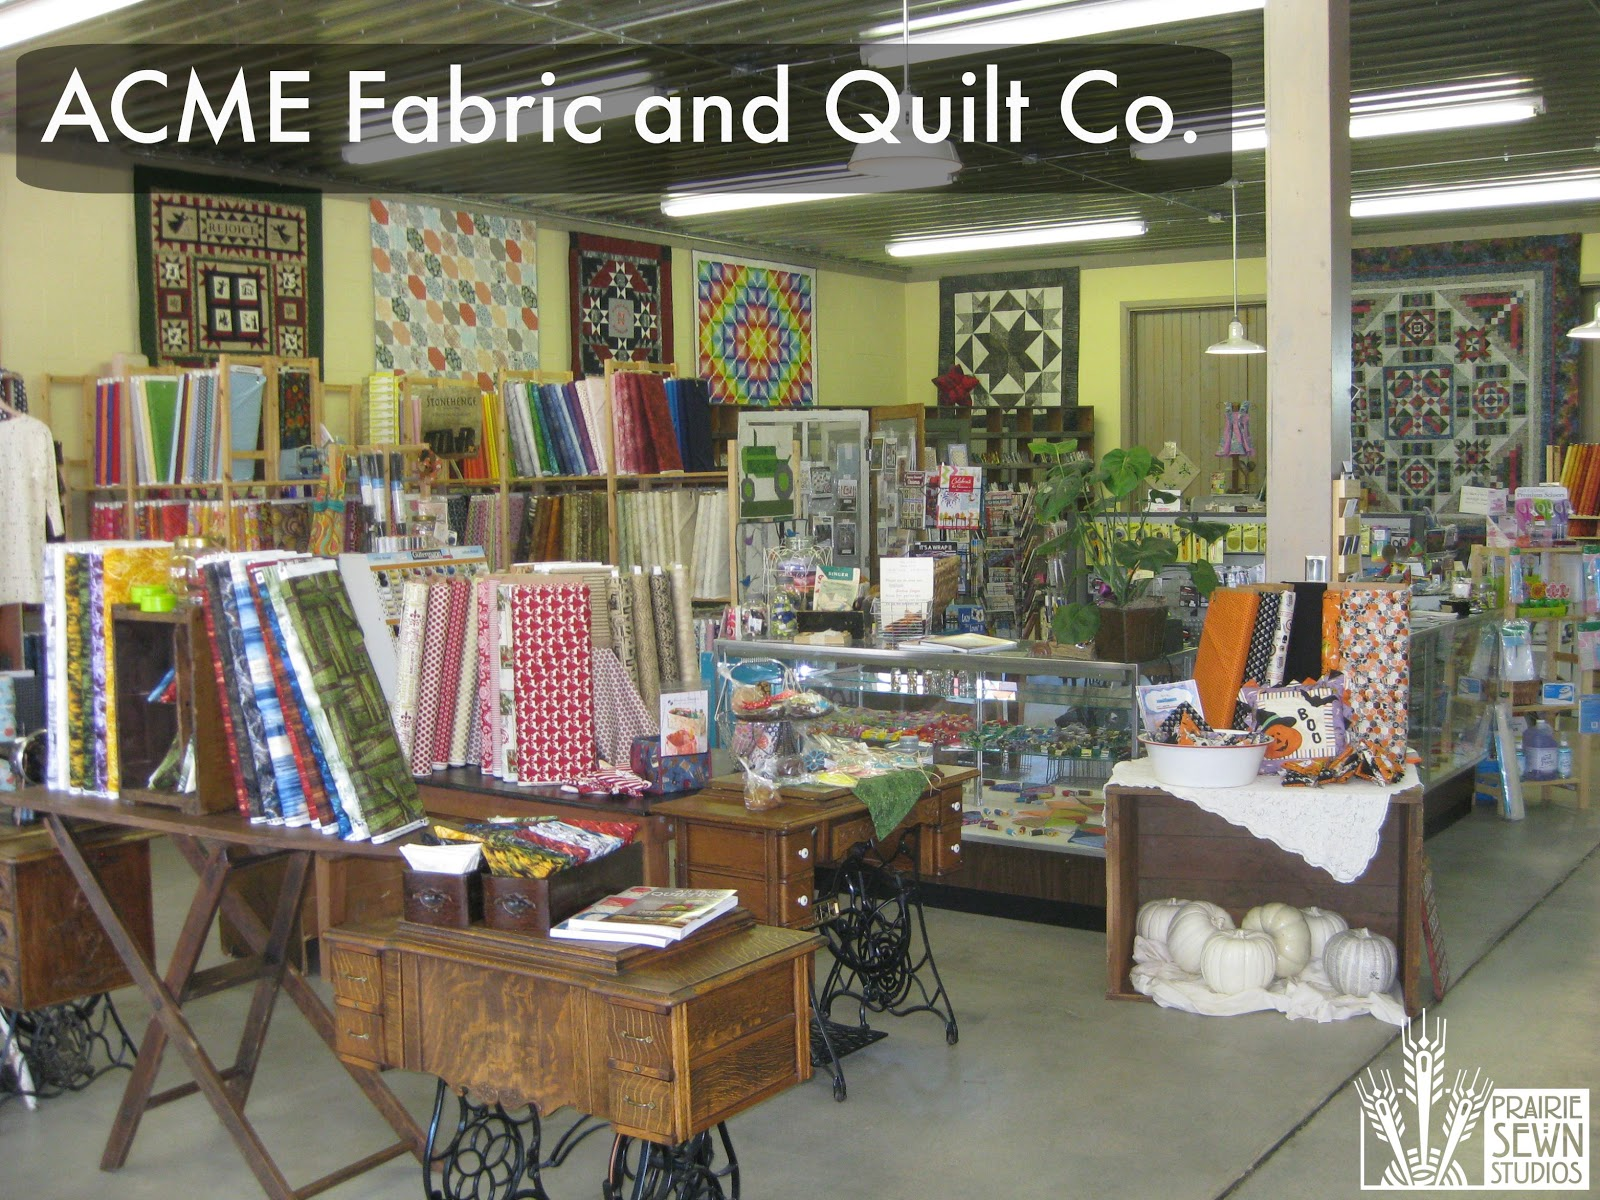 ACME Fabric and Quilt Co